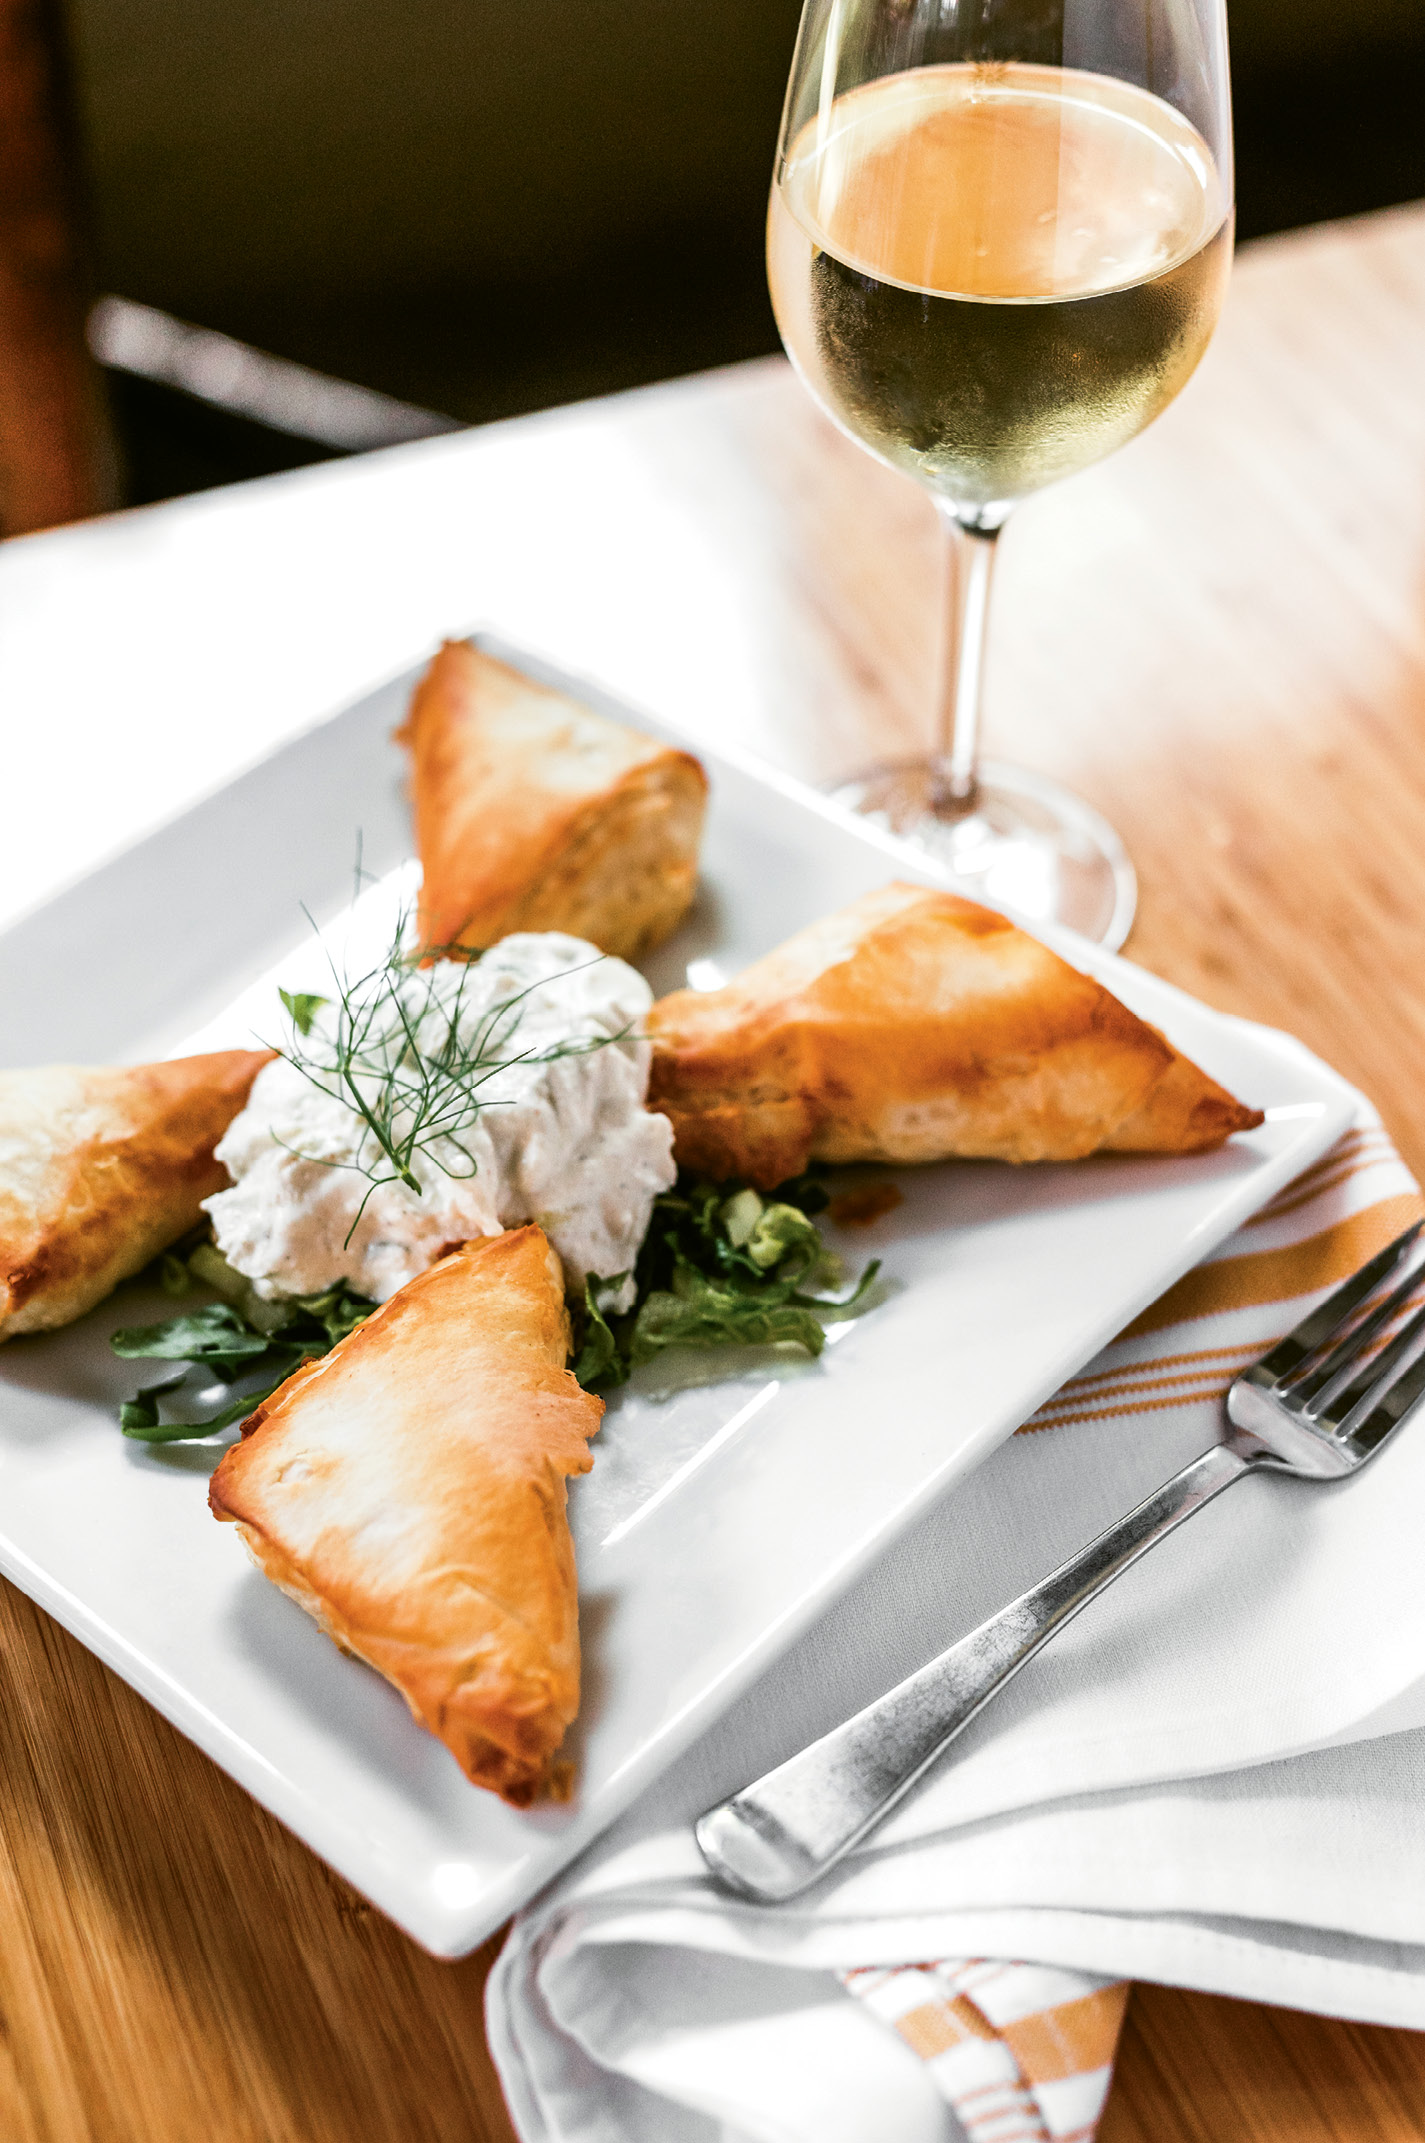 """The Stella Way"": Spanakopita, a flaky phyllo pastry filled with spinach and feta and served with tart tzatziki, is one of the traditional recipes Stella Dikos carried over from her childhood in Greece. At the restaurant, Dikos helps train the kitchen staff to cook in authentic Greek fashion, as she learned herself."